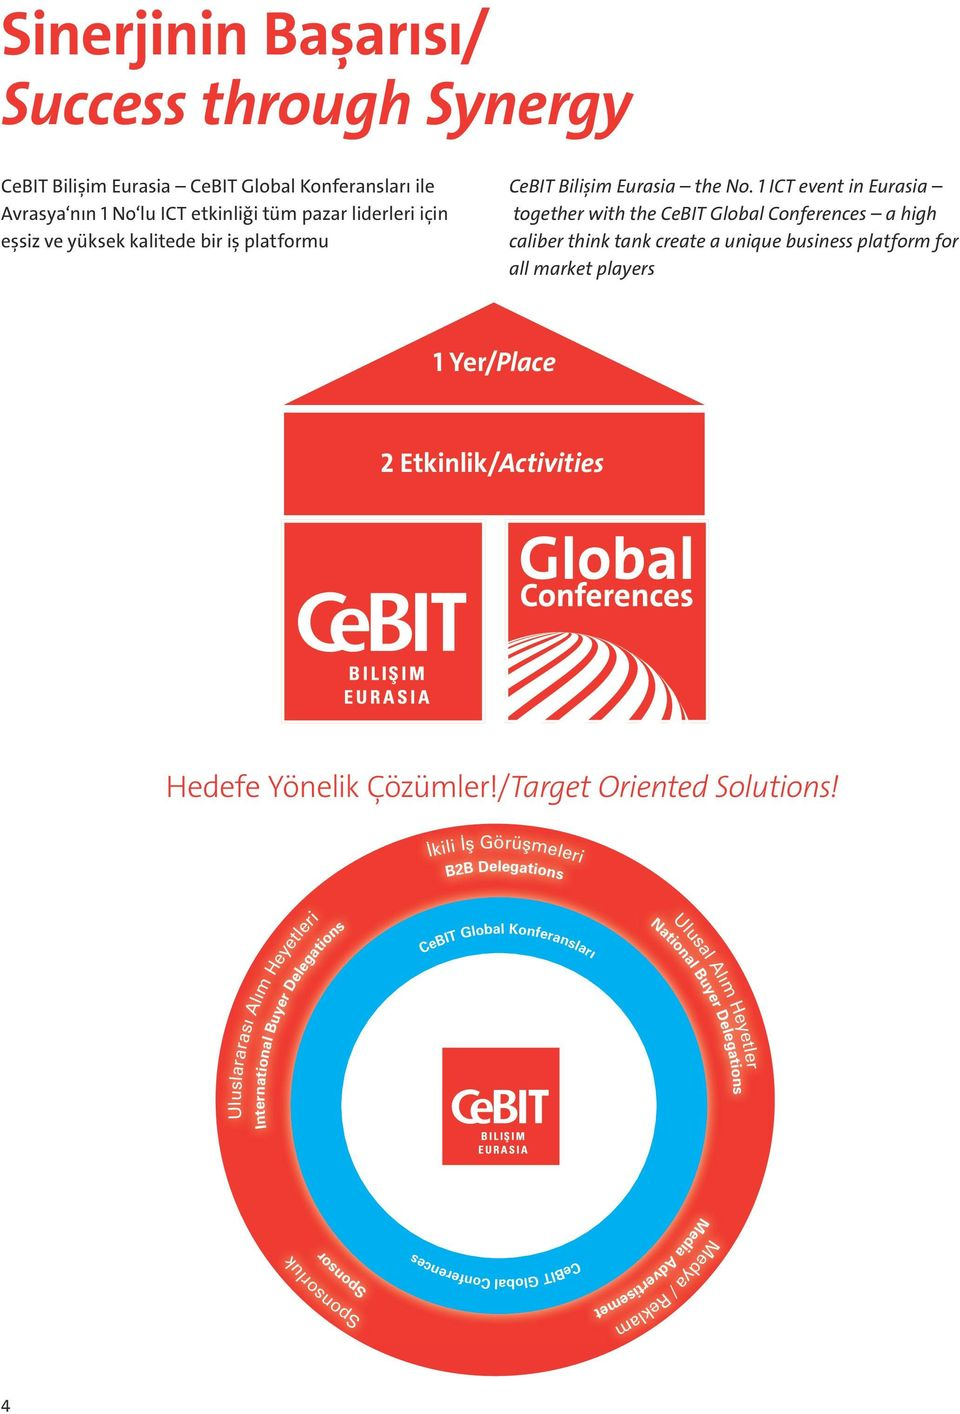 1 ICT event in Eurasia together with the CeBIT Global Conferences a high caliber think tank create a unique business platform for all market players 1 Yer/Place 2